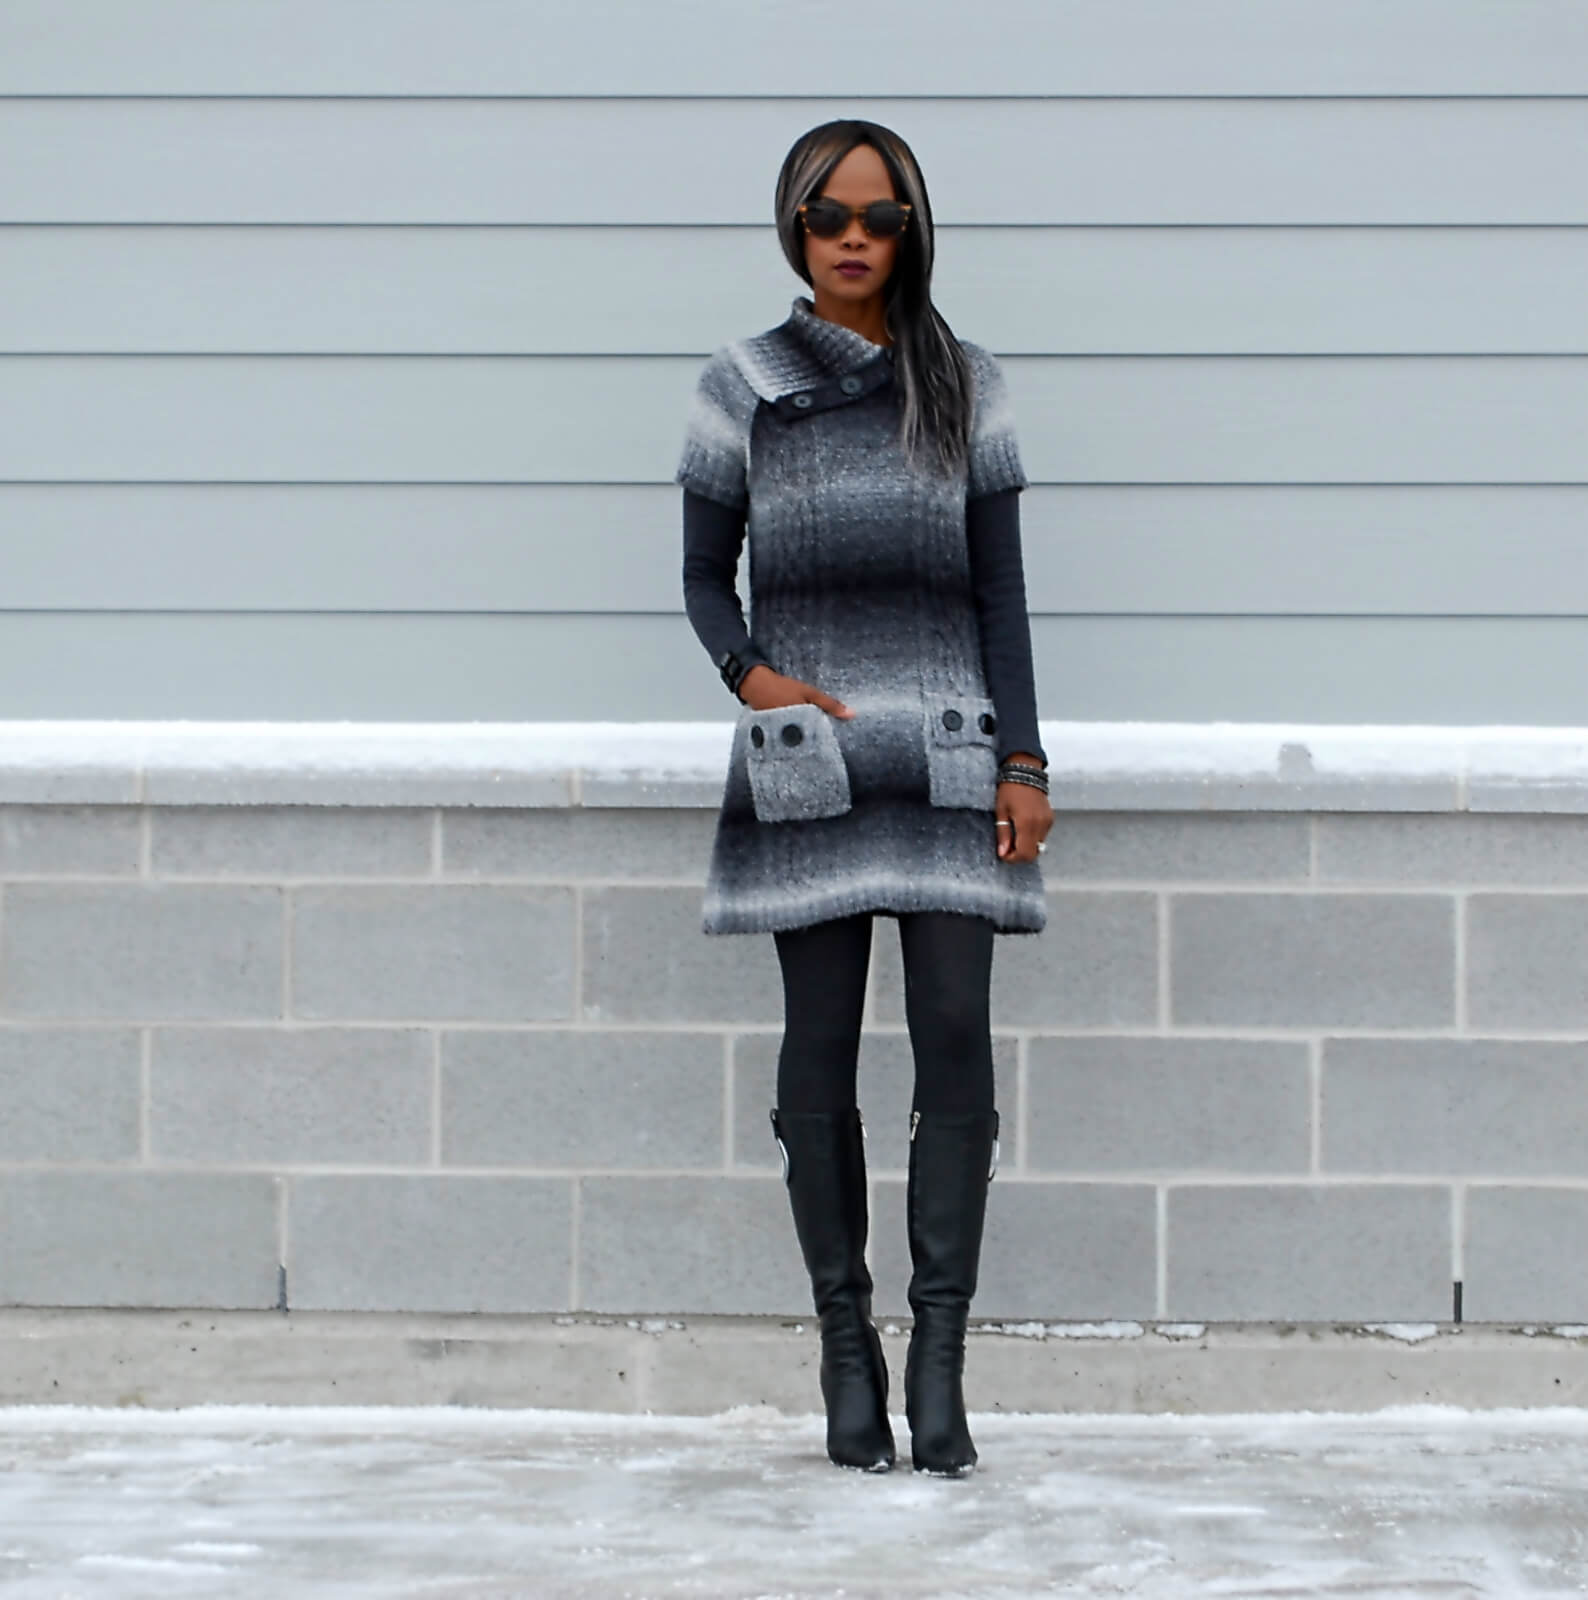 Hue tights, winnipeg fashion blogger, sweater dress, ombre sweater dress, leather boots, aldo leather boots, chrome heel boots, style my dreams blog, winter trends